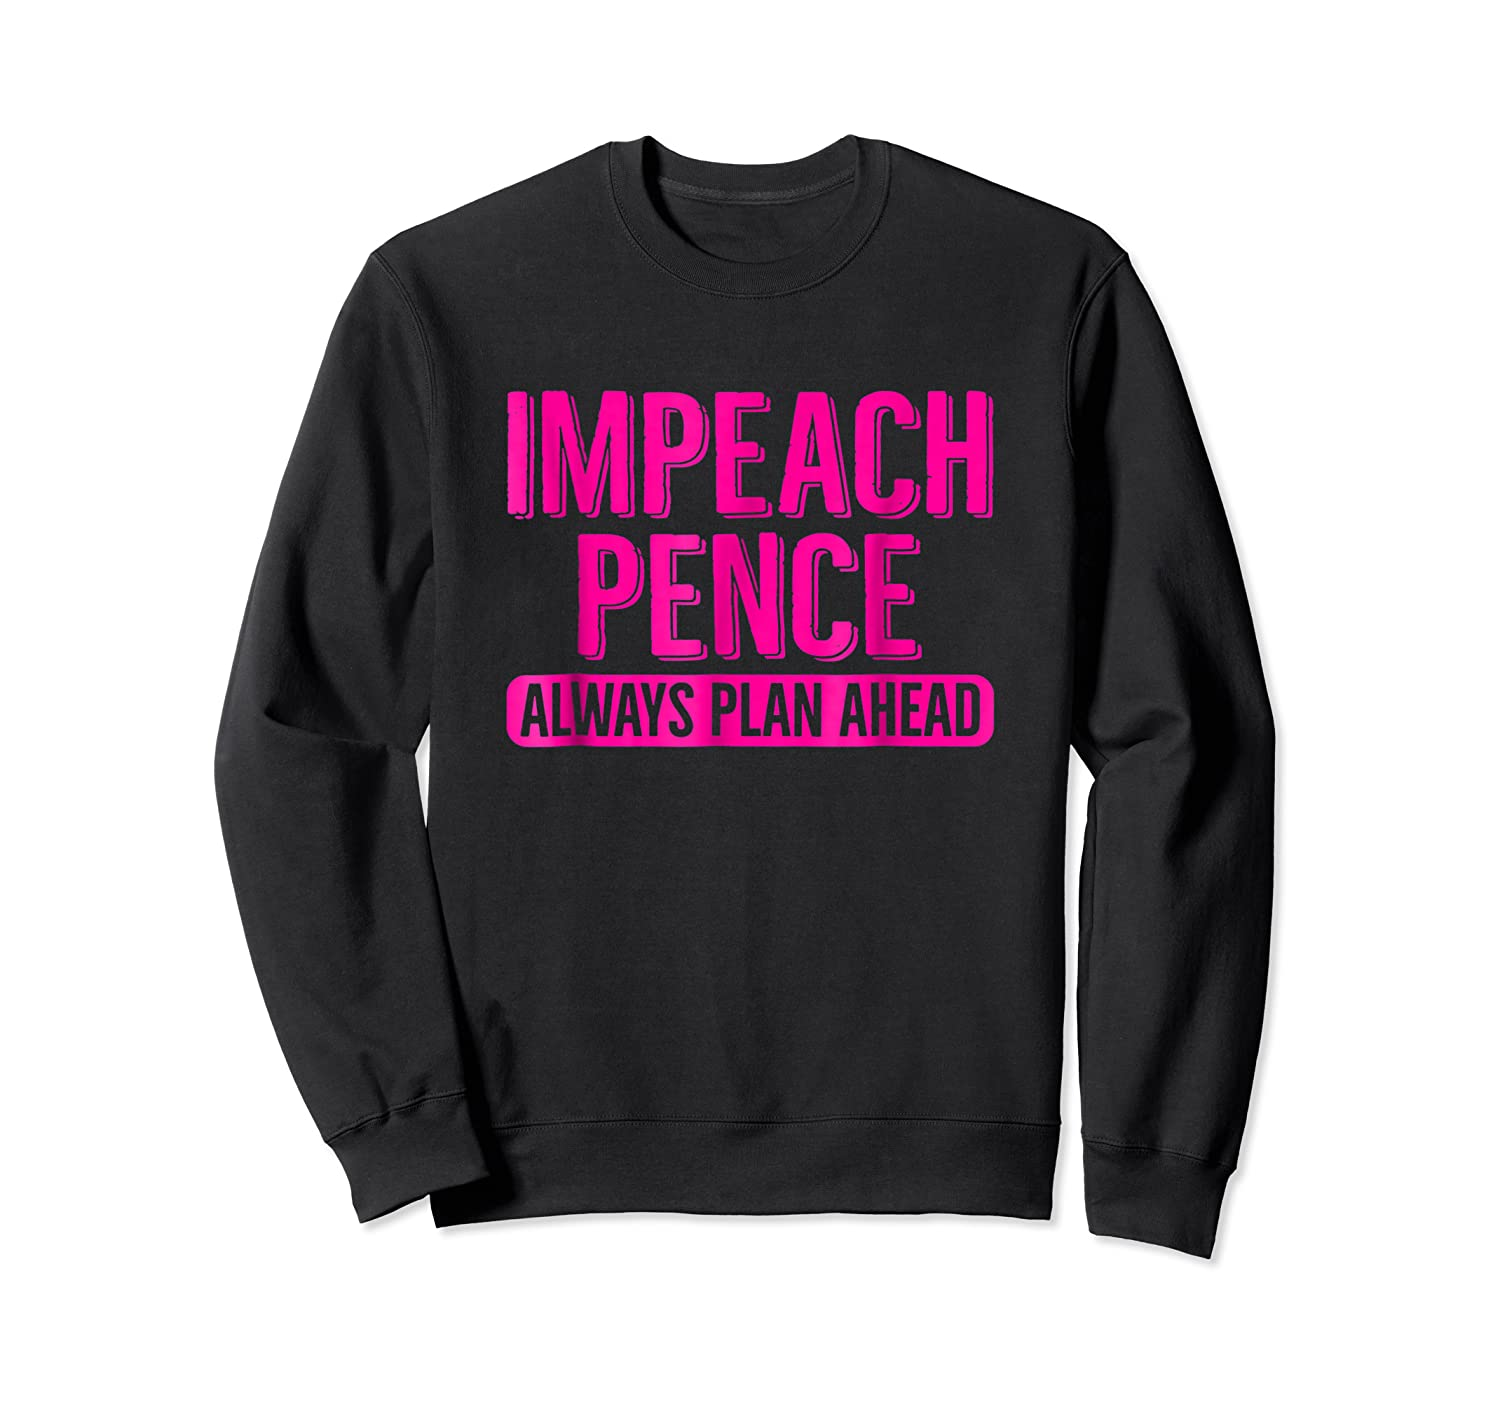 Pink Impeach Vice President Mike Pence T Shirt Plan Ahead Crewneck Sweater